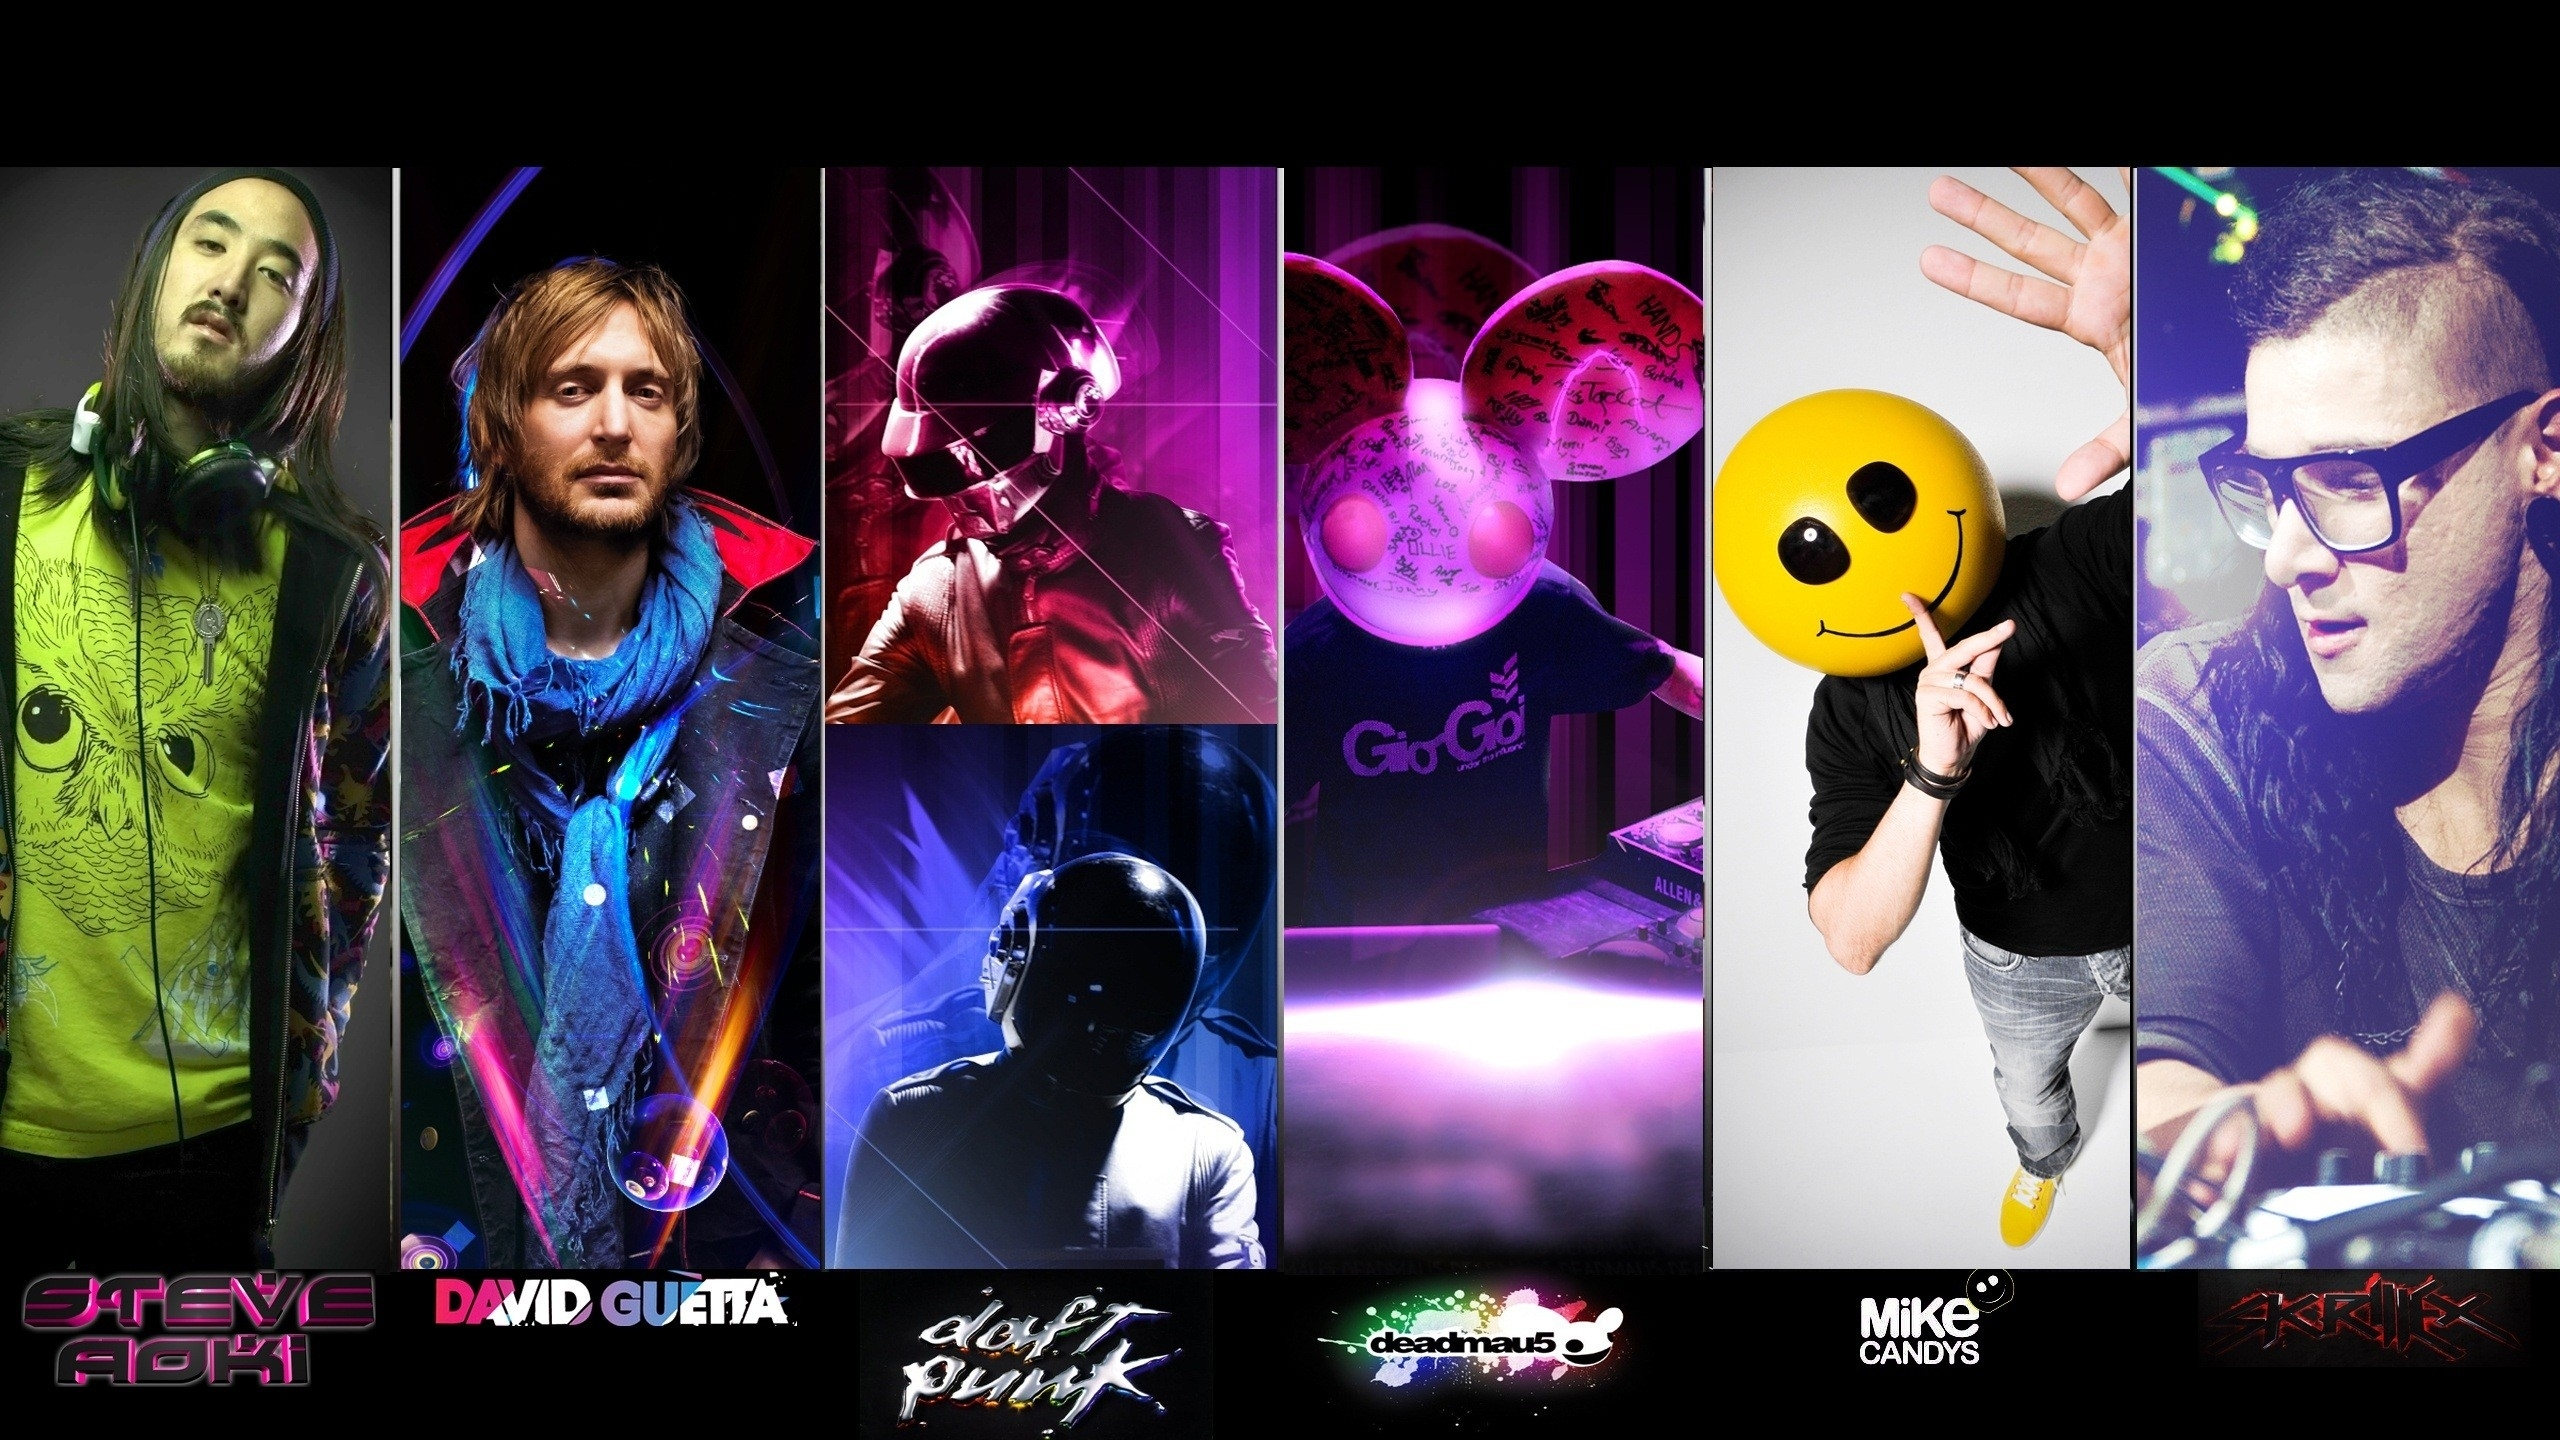 daft punk houses djs techno deadmau5 steve aoki david guetta skrillex    Deadmau5 And Skrillex And Daft Punk